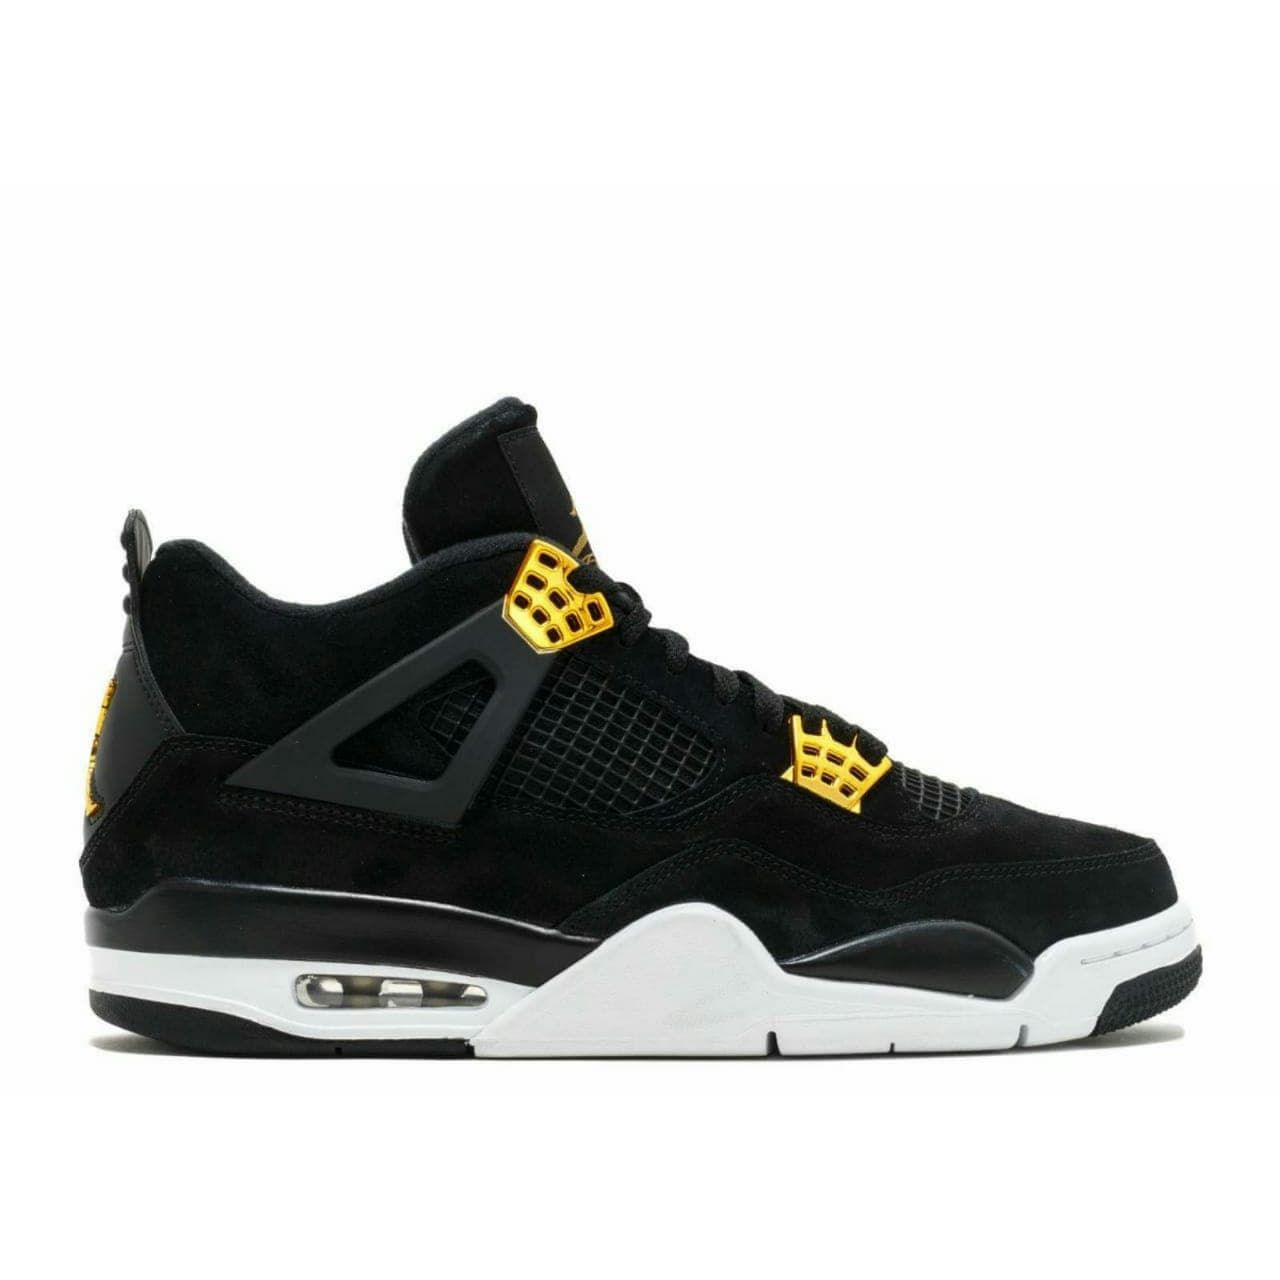 "save off 1abf0 02866 AIR JORDAN 4 RETRO ""ROYALTY""  shoes  fashion  style  model  instagood  love   photooftheday  sneakers  stylish  cute  hair  styles  shopping  nike  me  ..."